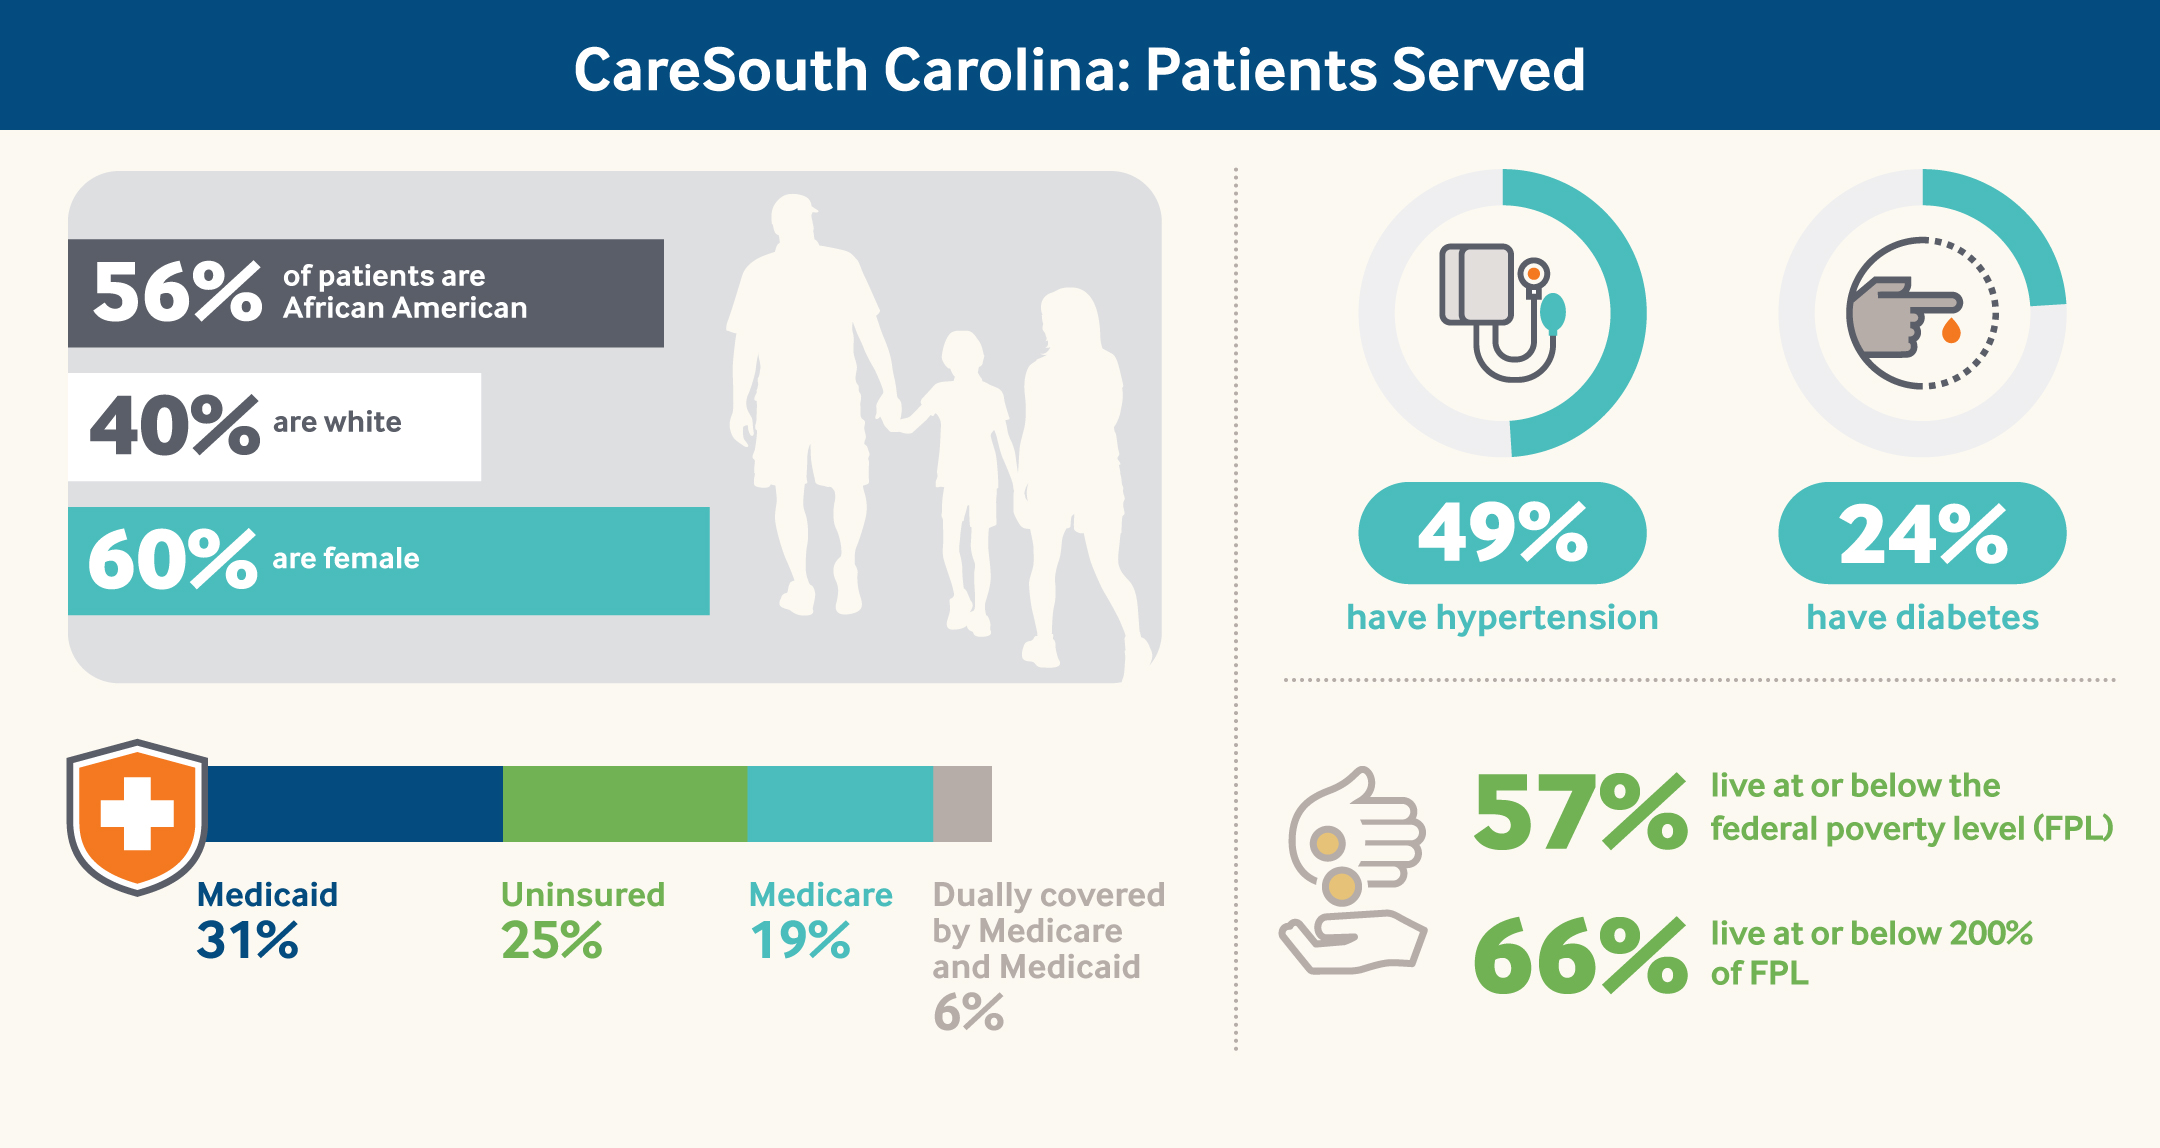 CareSouth Carolina: Patients Served